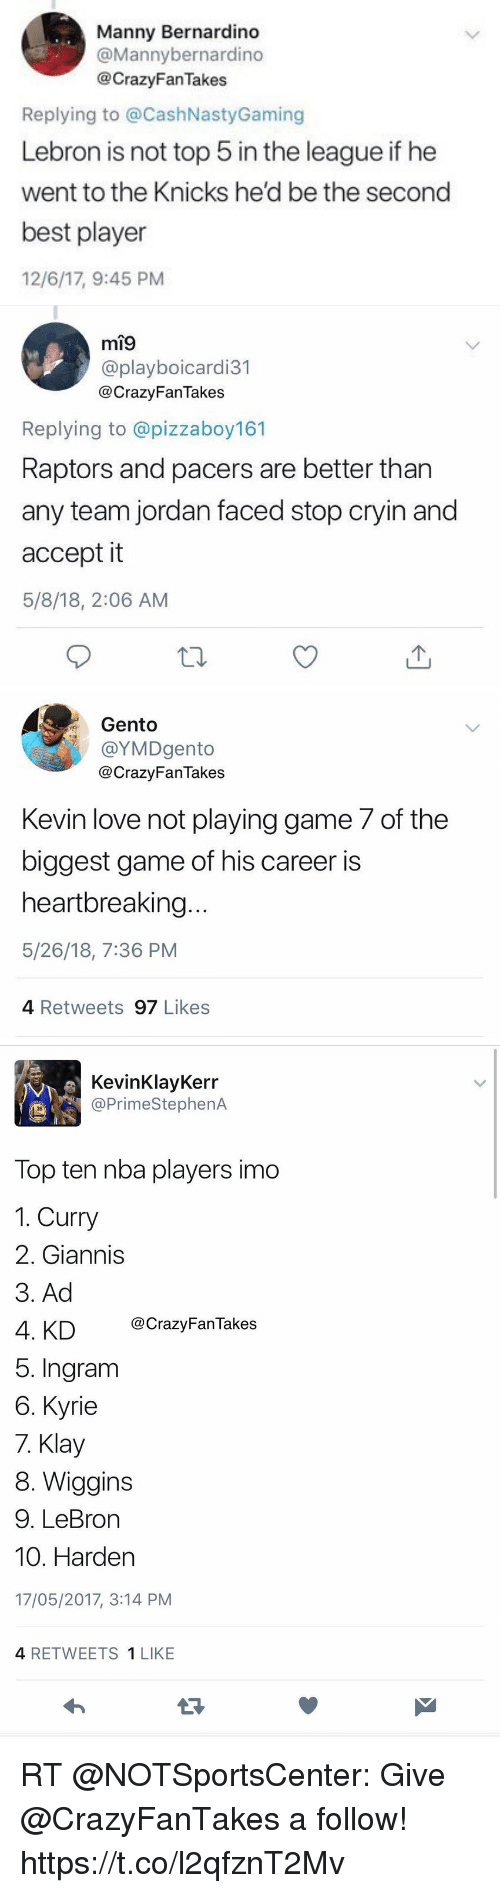 Kevin Love, New York Knicks, and Love: Manny Bernardino  @Mannybernardino  @CrazyFanTakes  Replying to @CashNastyGaming  Lebron is not top 5 in the league if he  went to the Knicks he'd be the second  best player  12/6/17, 9:45 PM   mi9  @playboicardi31  @CrazyFan Takes  Replying to @pizzaboy161  Raptors and pacers are better than  any team jordan faced stop cryin and  accept it  5/8/18, 2:06 AM   Gento  @YMDgento  @CrazyFanTakes  Kevin love not playing game 7 of the  biggest game of his career is  heartbreaking  5/26/18, 7:36 PM  4 Retweets 97 Likes   KevinKlayKerr  @PrimeStephenA  35  Top ten nba players imo  1. Curry  2. Giannis  3. Ad  4. KD CrazyFanTakes  5. Ingram  6. Kyrie  7. Klay  8. Wiggins  9. LeBron  10. Harden  17/05/2017, 3:14 PM  4 RETWEETS 1 LIKE RT @NOTSportsCenter: Give @CrazyFanTakes a follow! https://t.co/l2qfznT2Mv